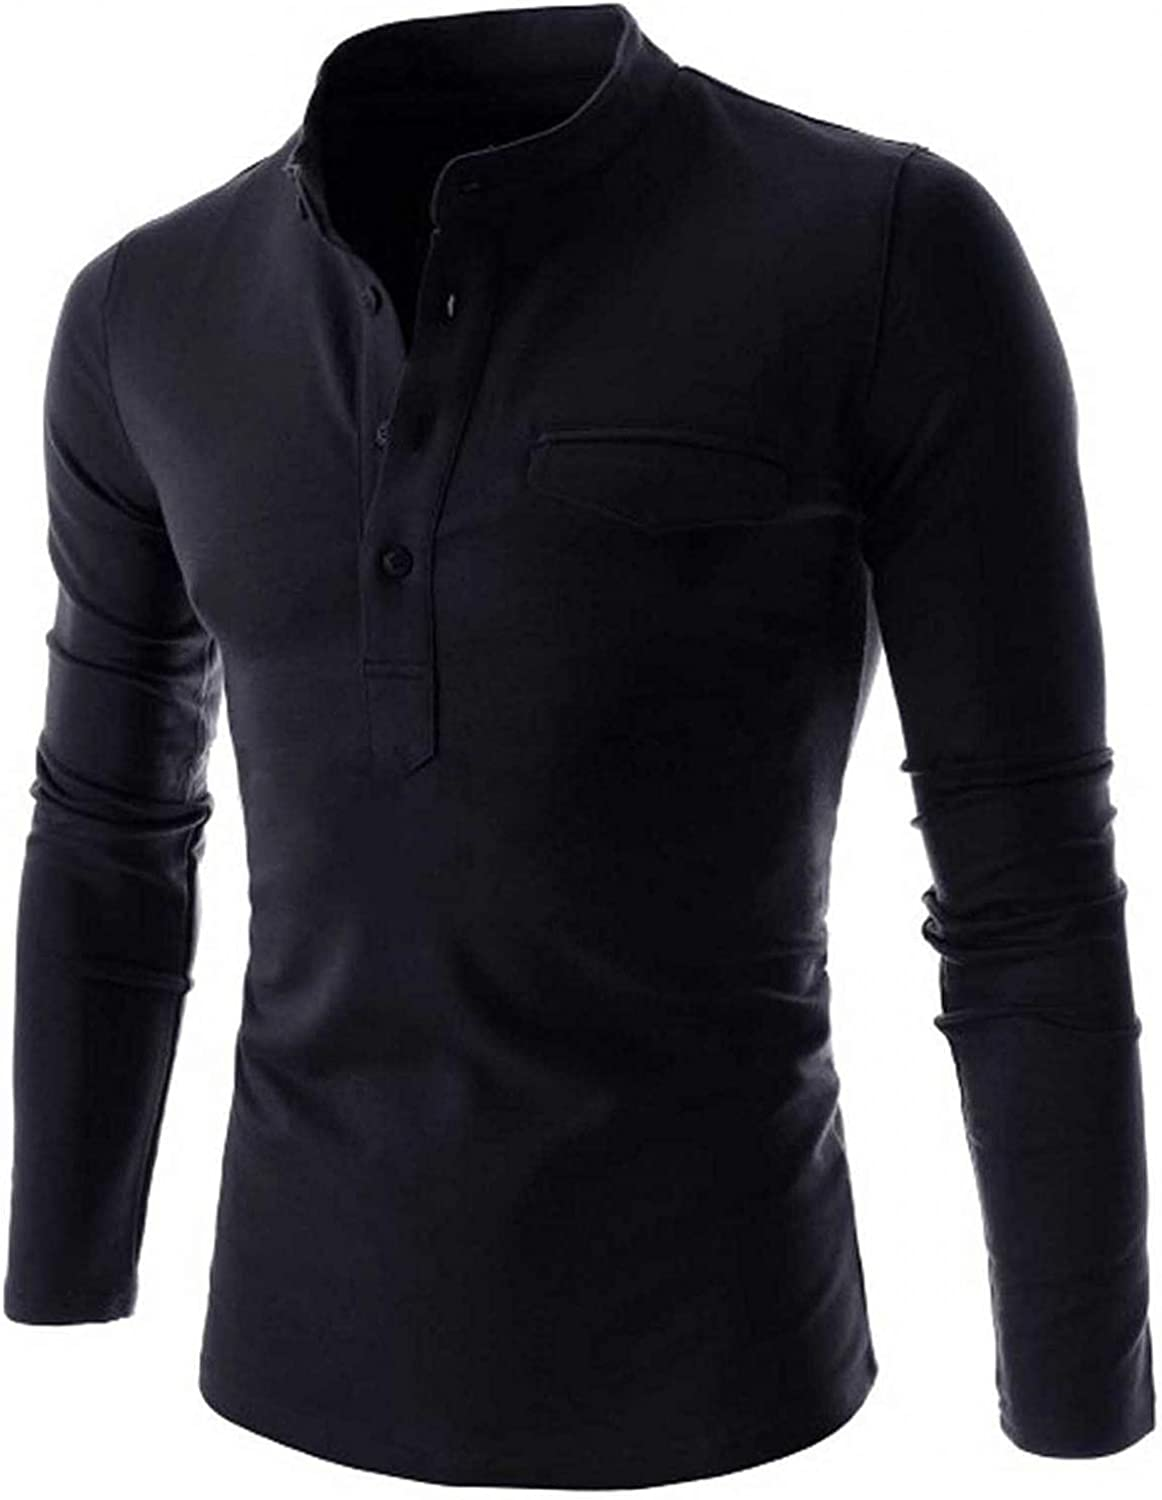 FUNEY Long Sleeve Button Up Henley Shirts for Men Cotton Casual Slim Fit Lightweight V Neck Solid Color Pullover Tshirts